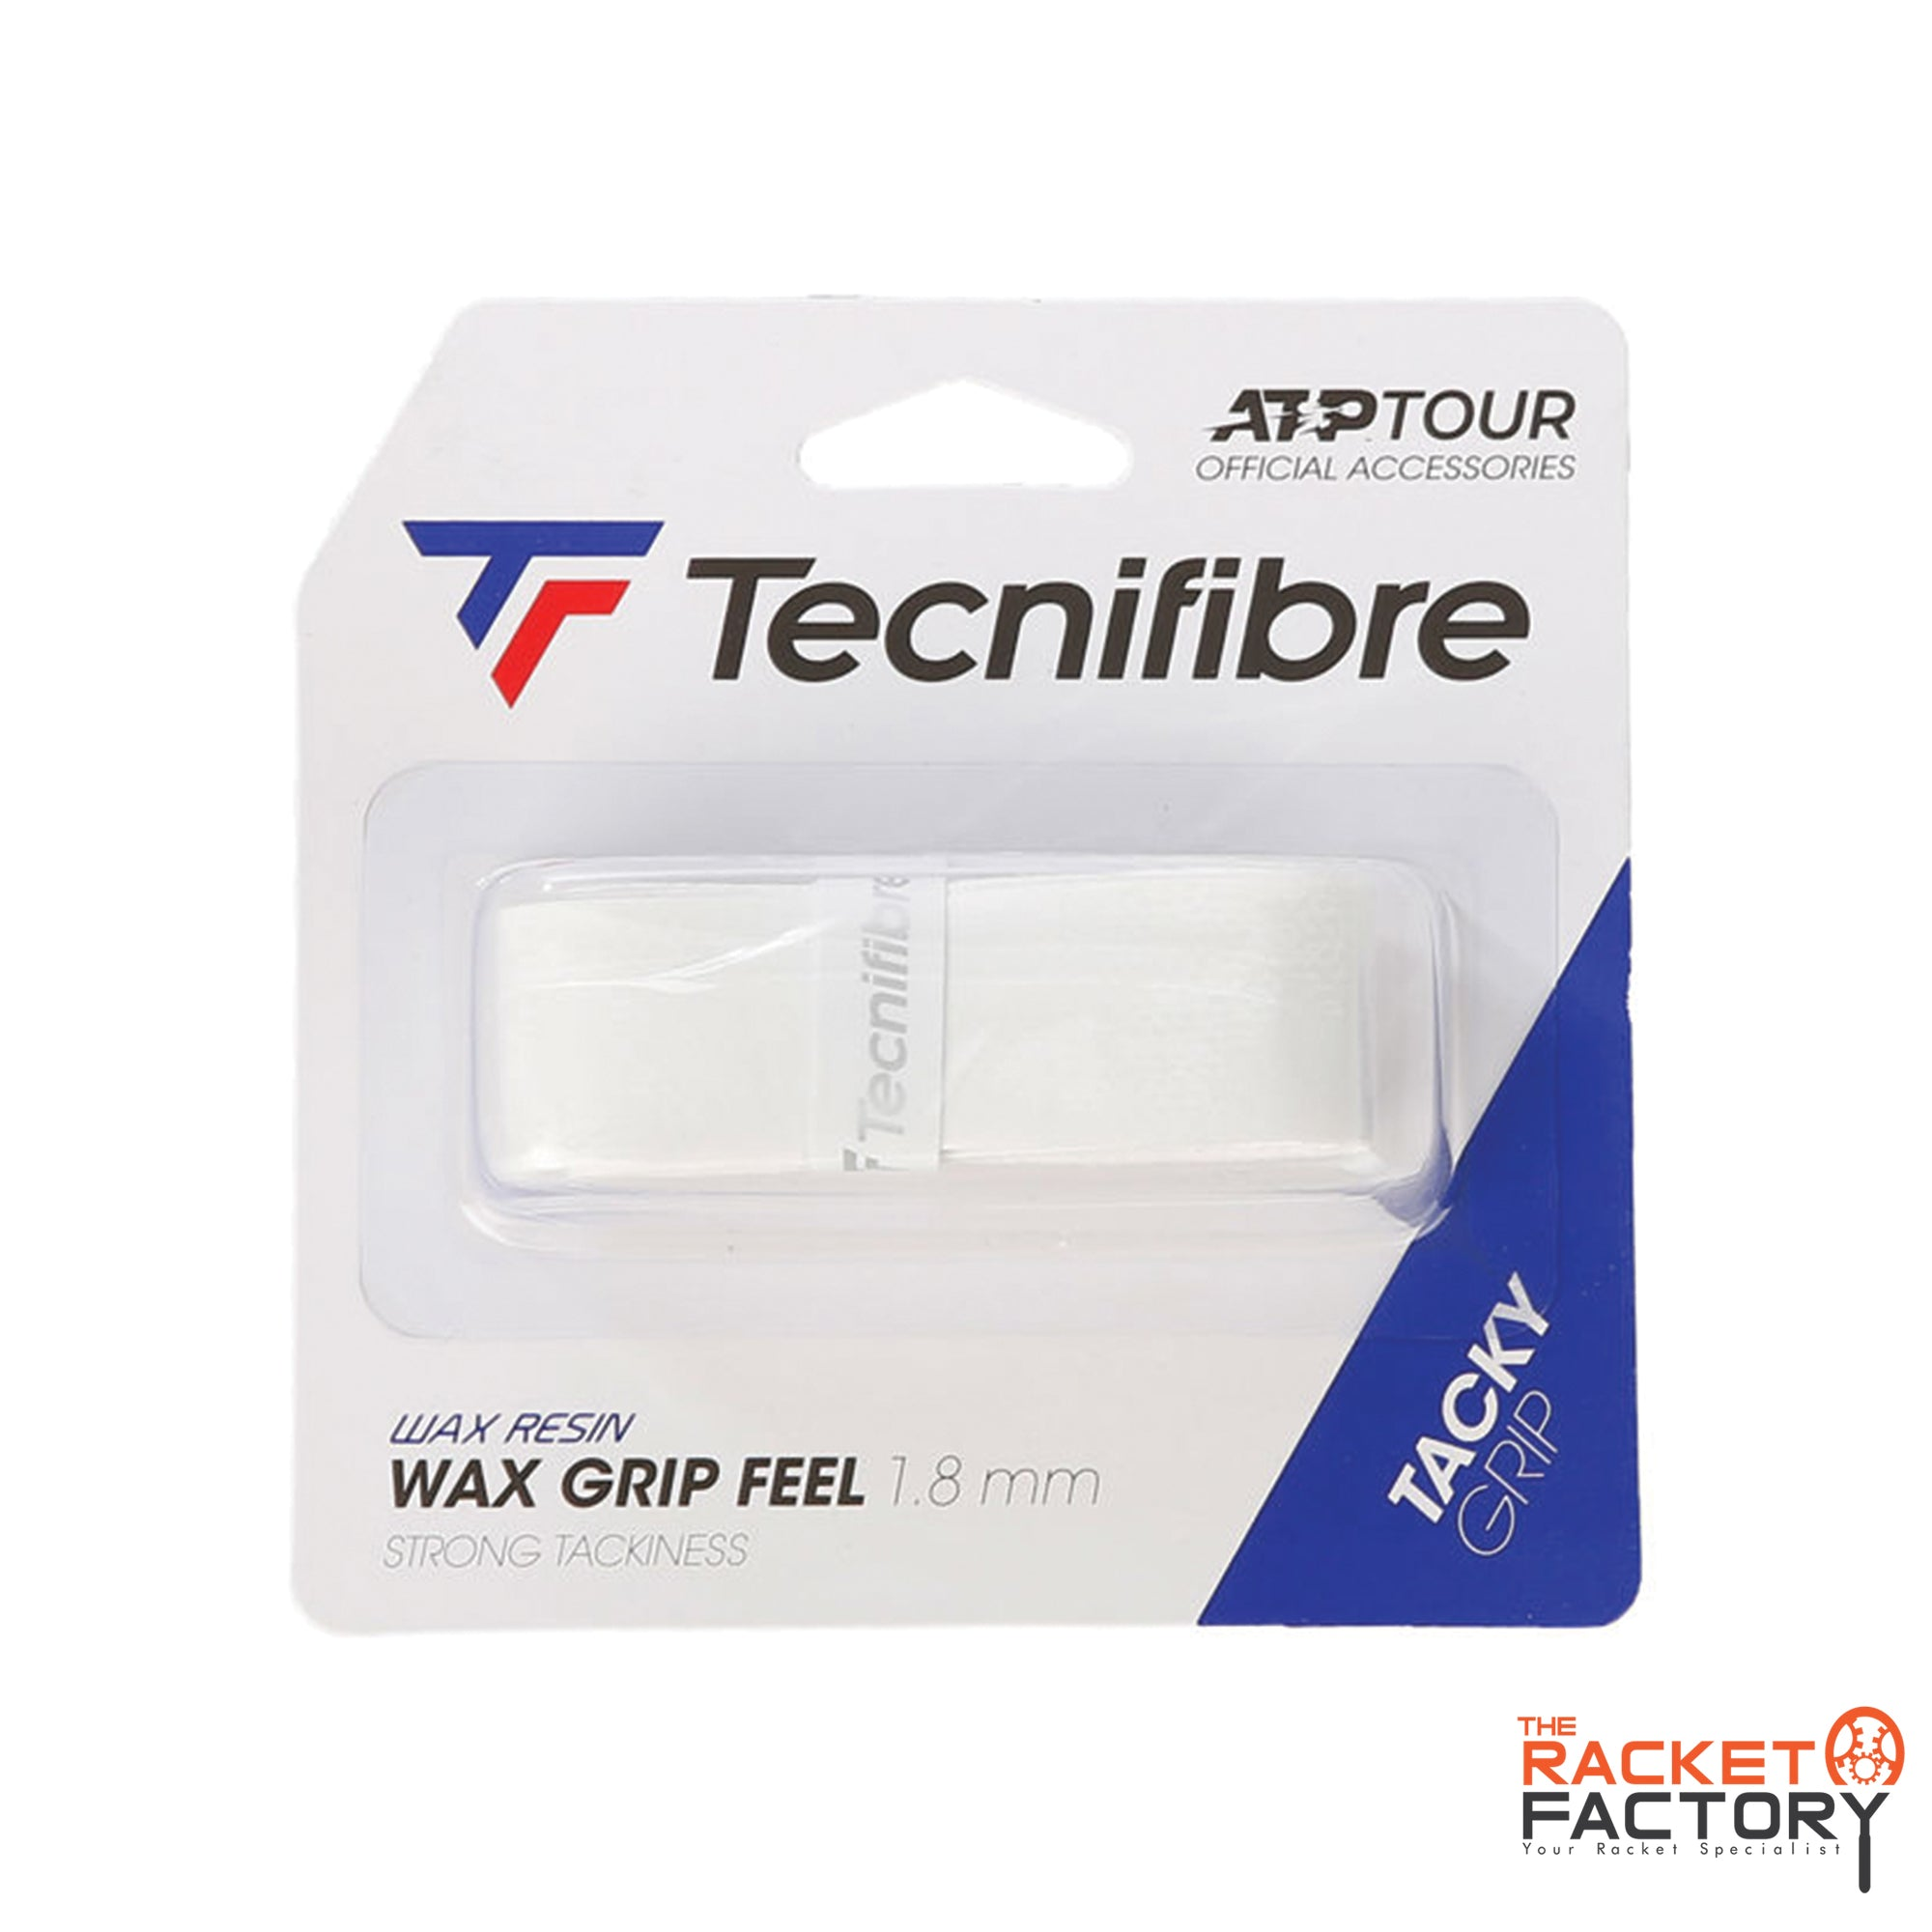 Tecnifibre ATP Wax Grip Feel Replacement Grip - Pack of 1